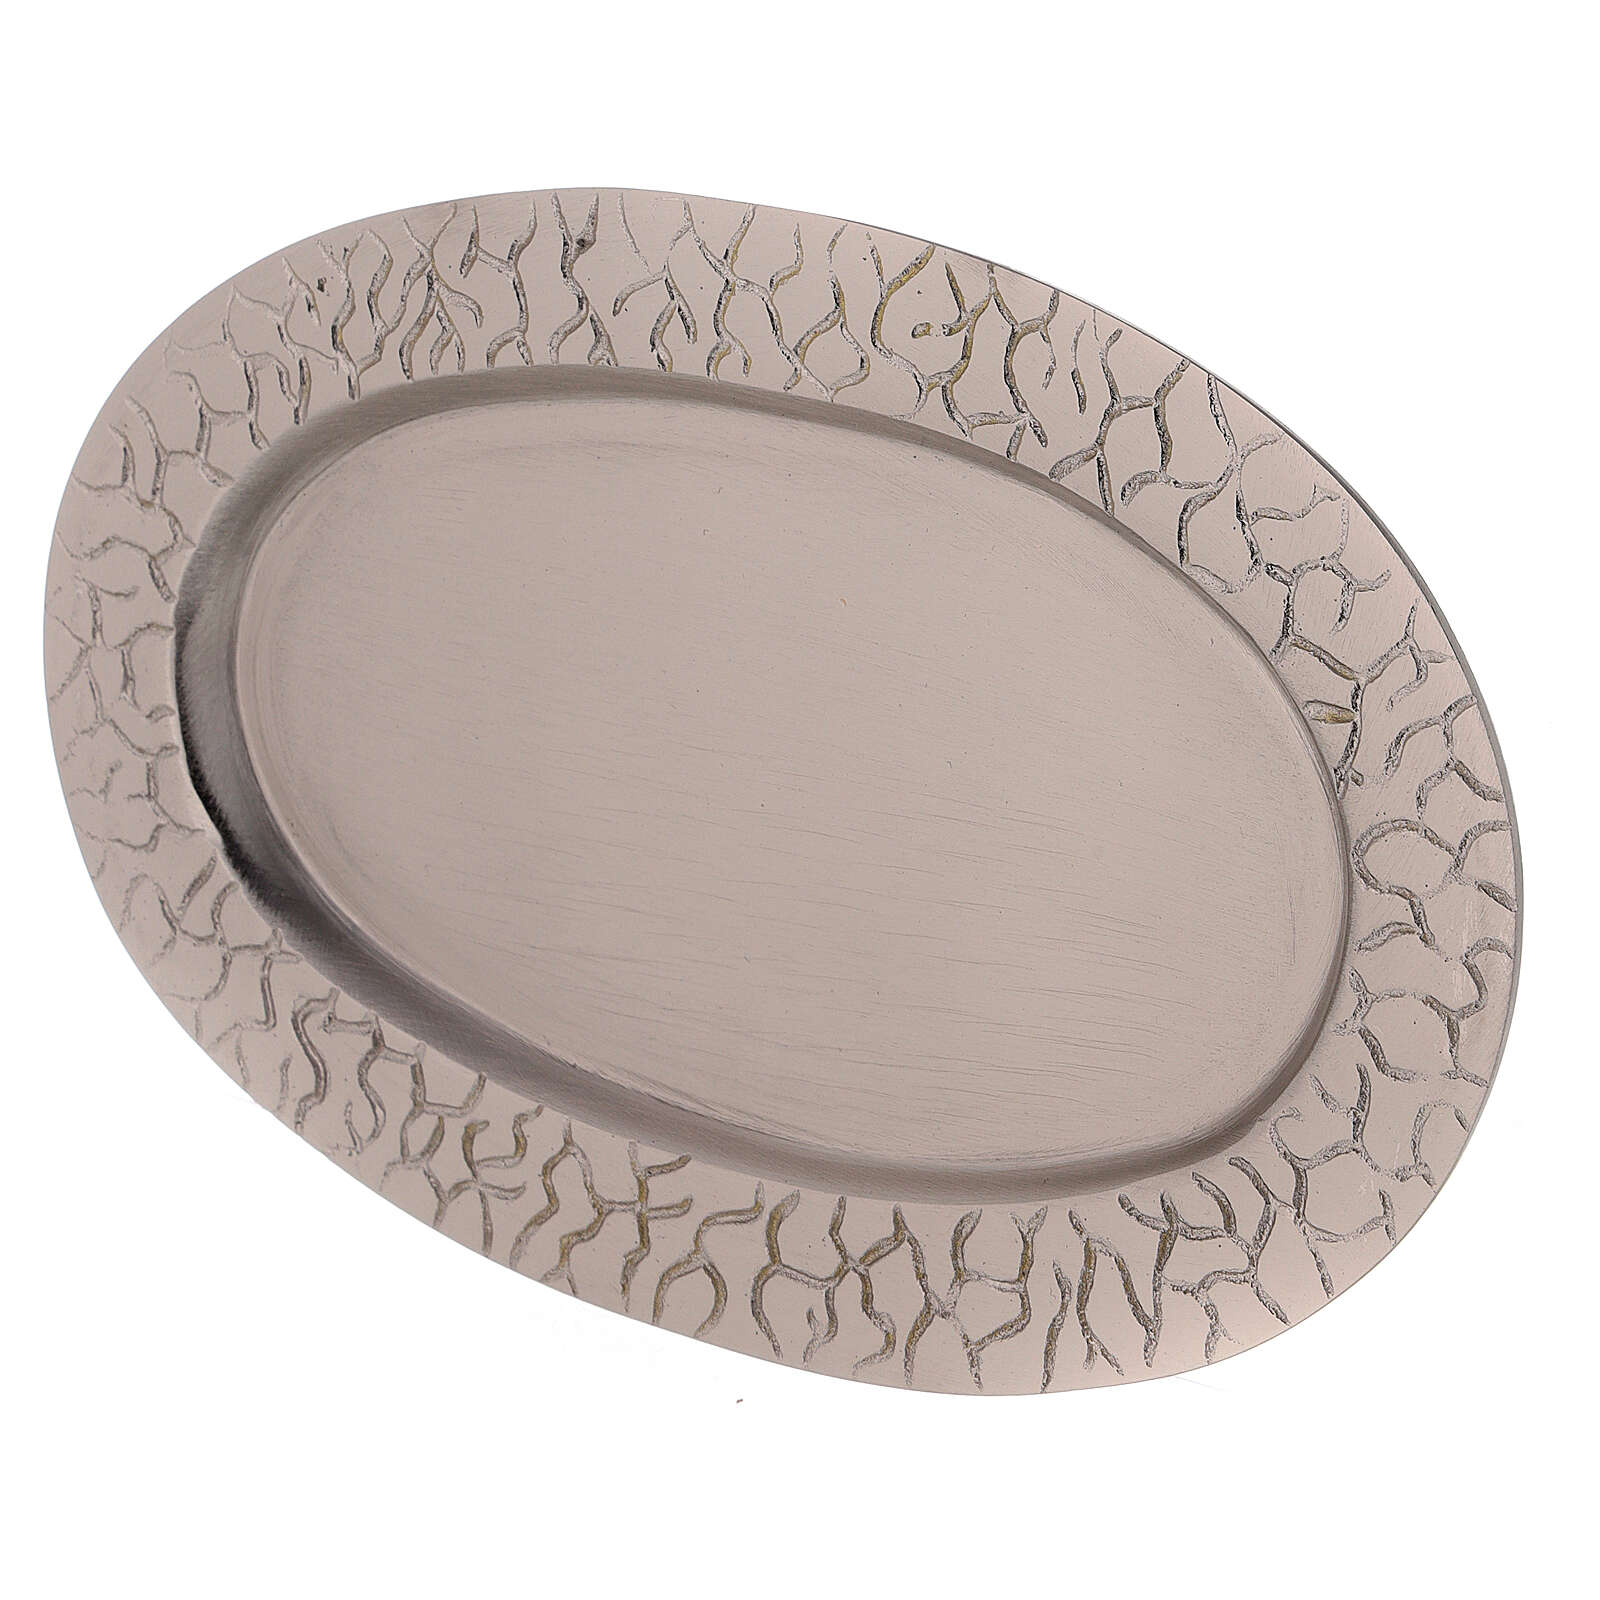 Oval candle holder plate with engraved edge nickel-plated brass 5 1/2x3 in 3